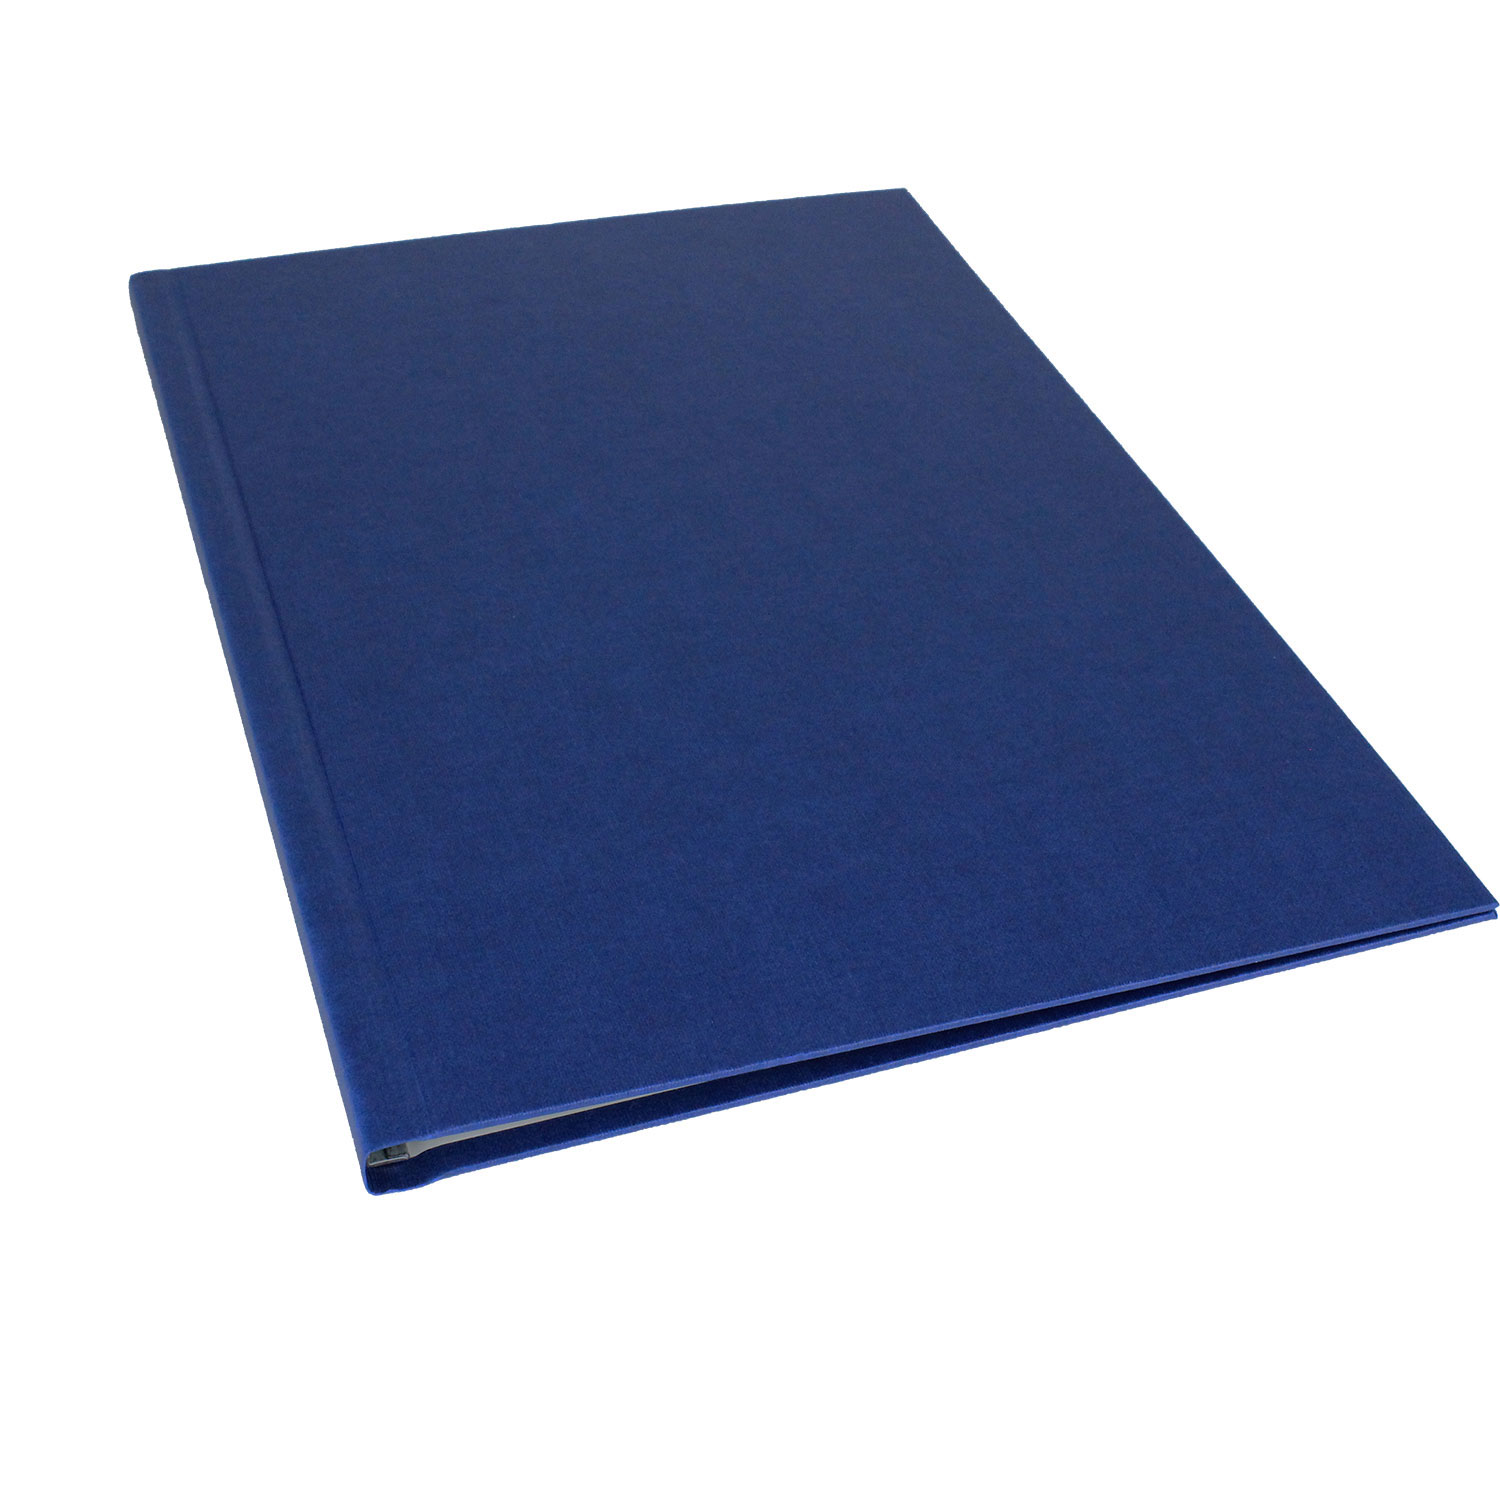 Impressbind A4 Hard Linen Binding Covers - Blue